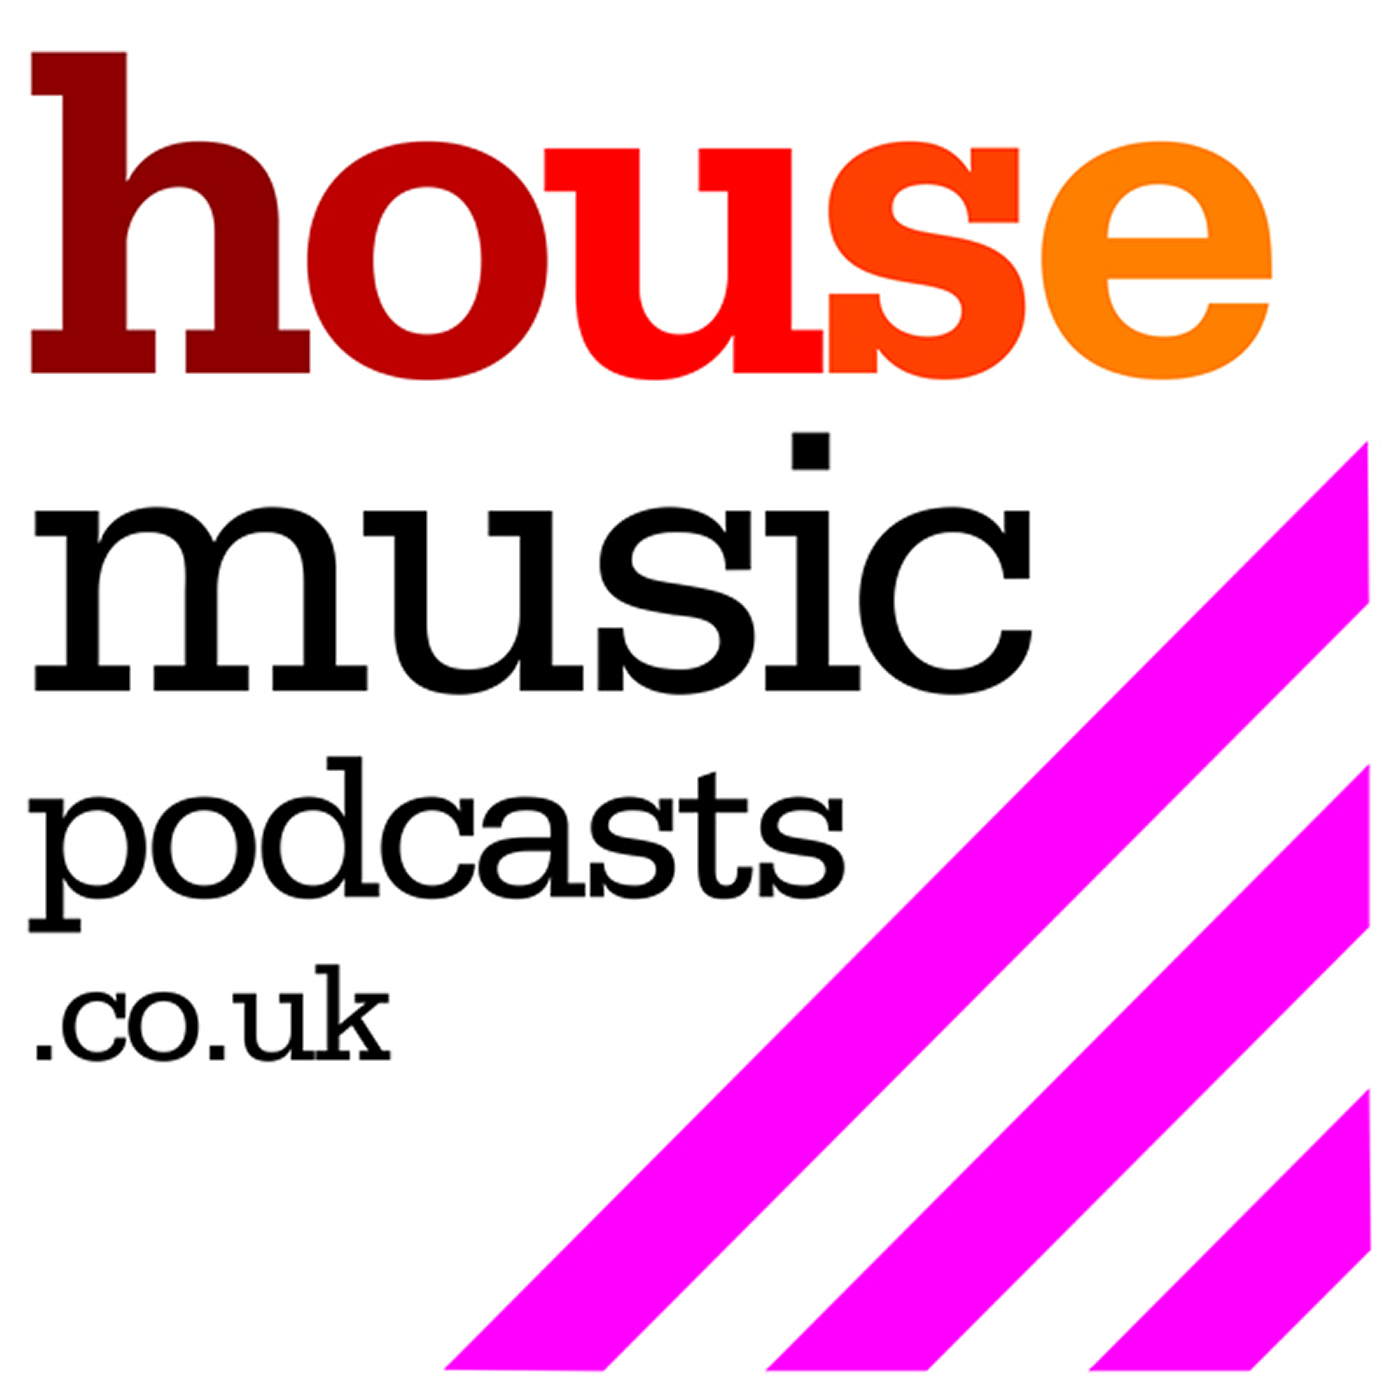 Luis del Villar – House Music Podcasts